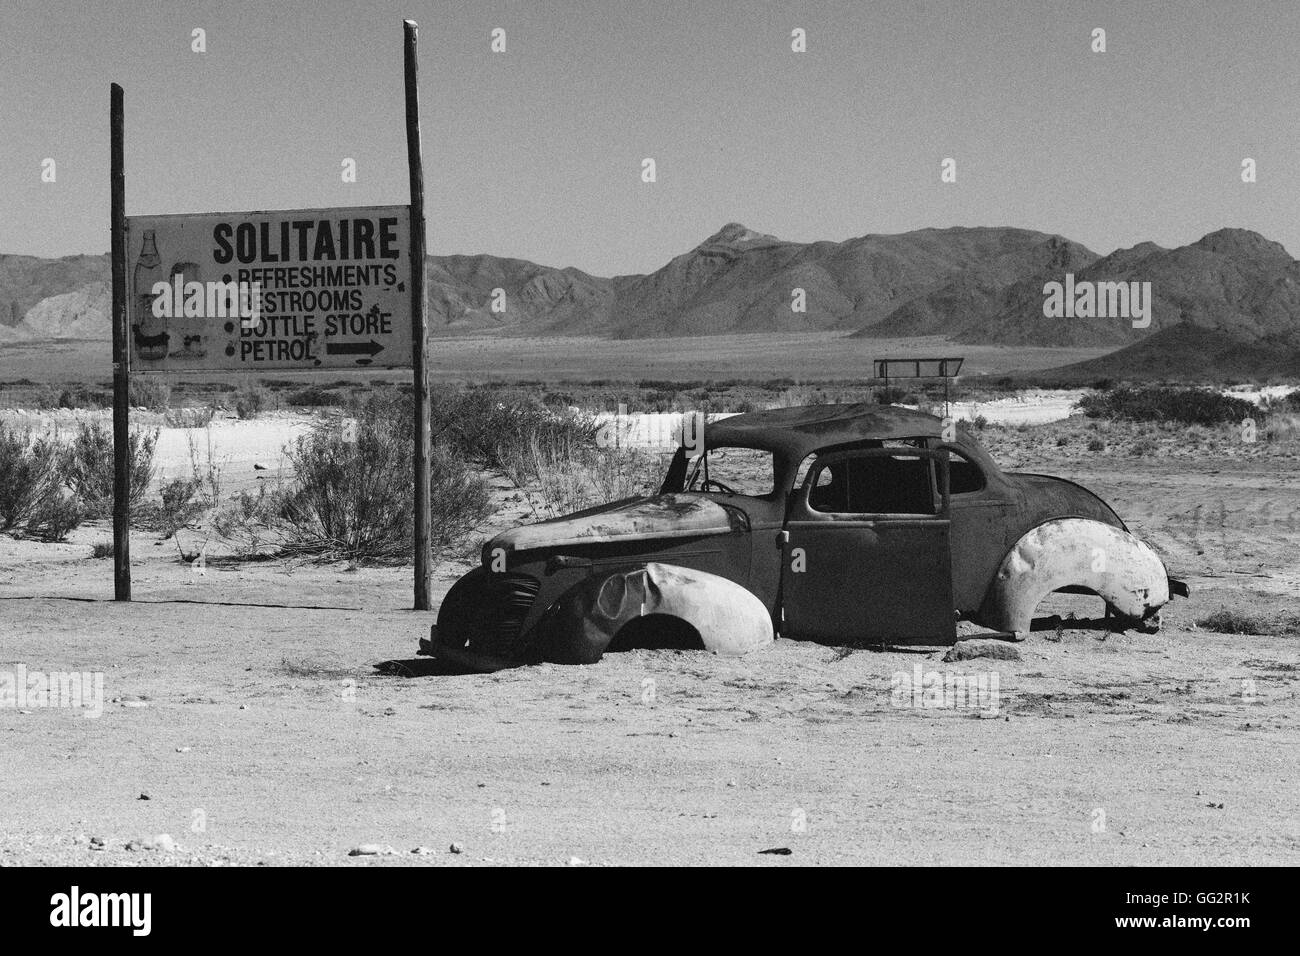 Solitaire Namibia Abandoned car - Stock Image